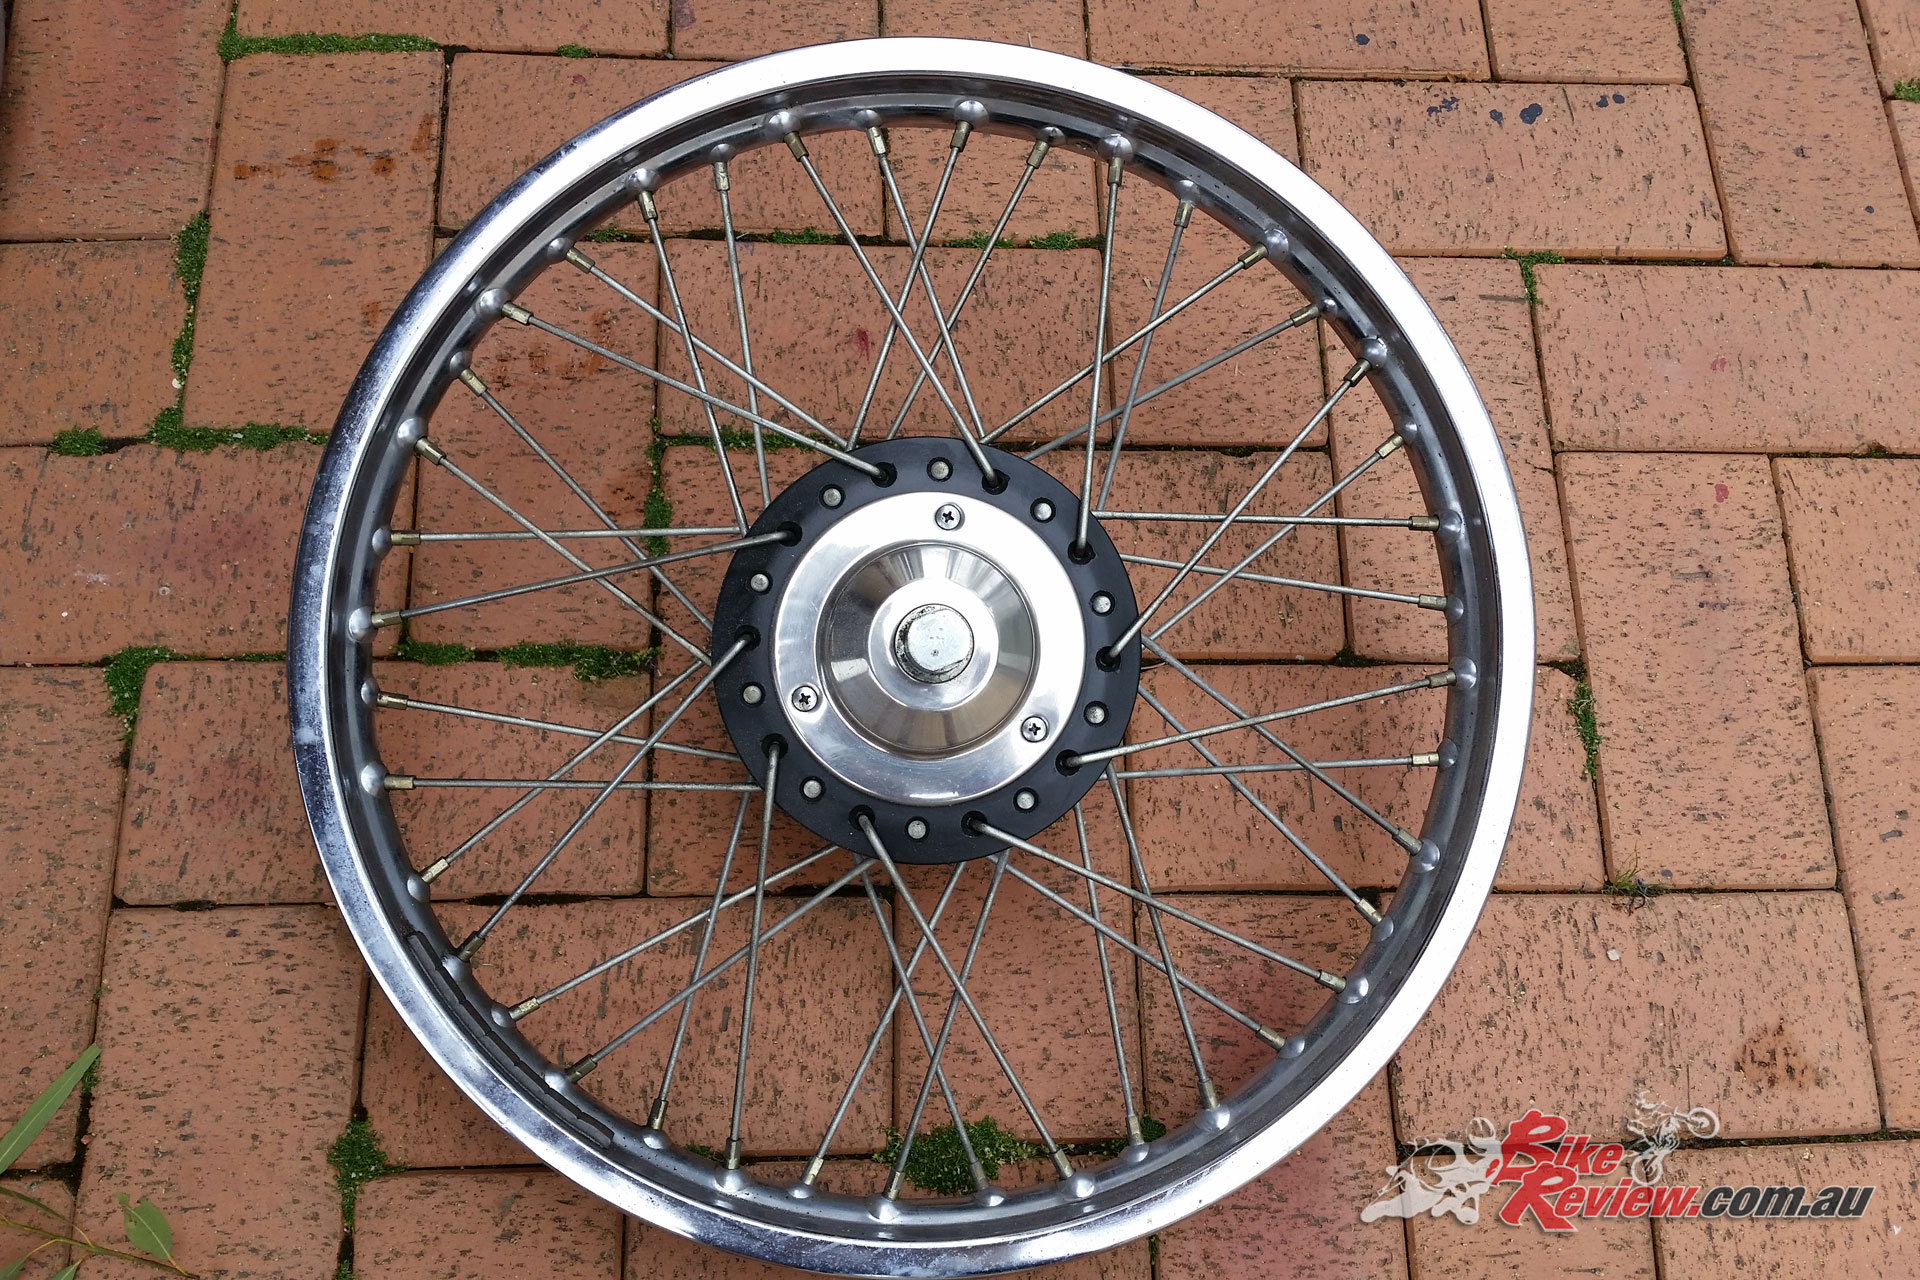 Original rims were replaced with alloy shouldered rims, with stainless steel spokes.